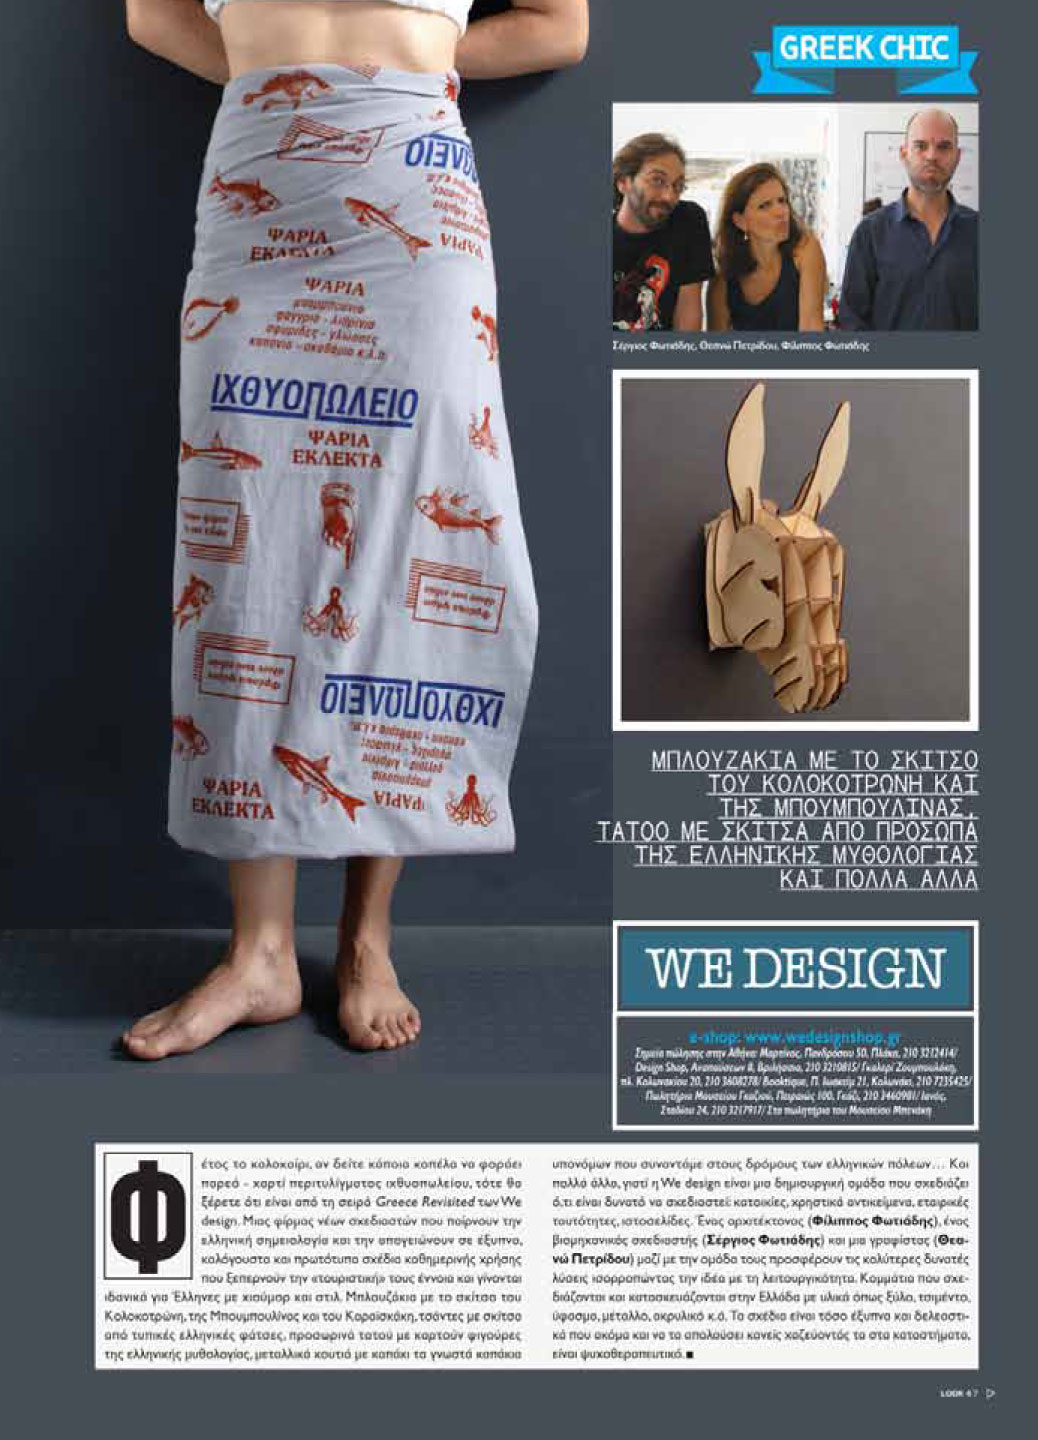 LookMag-wedesign-in